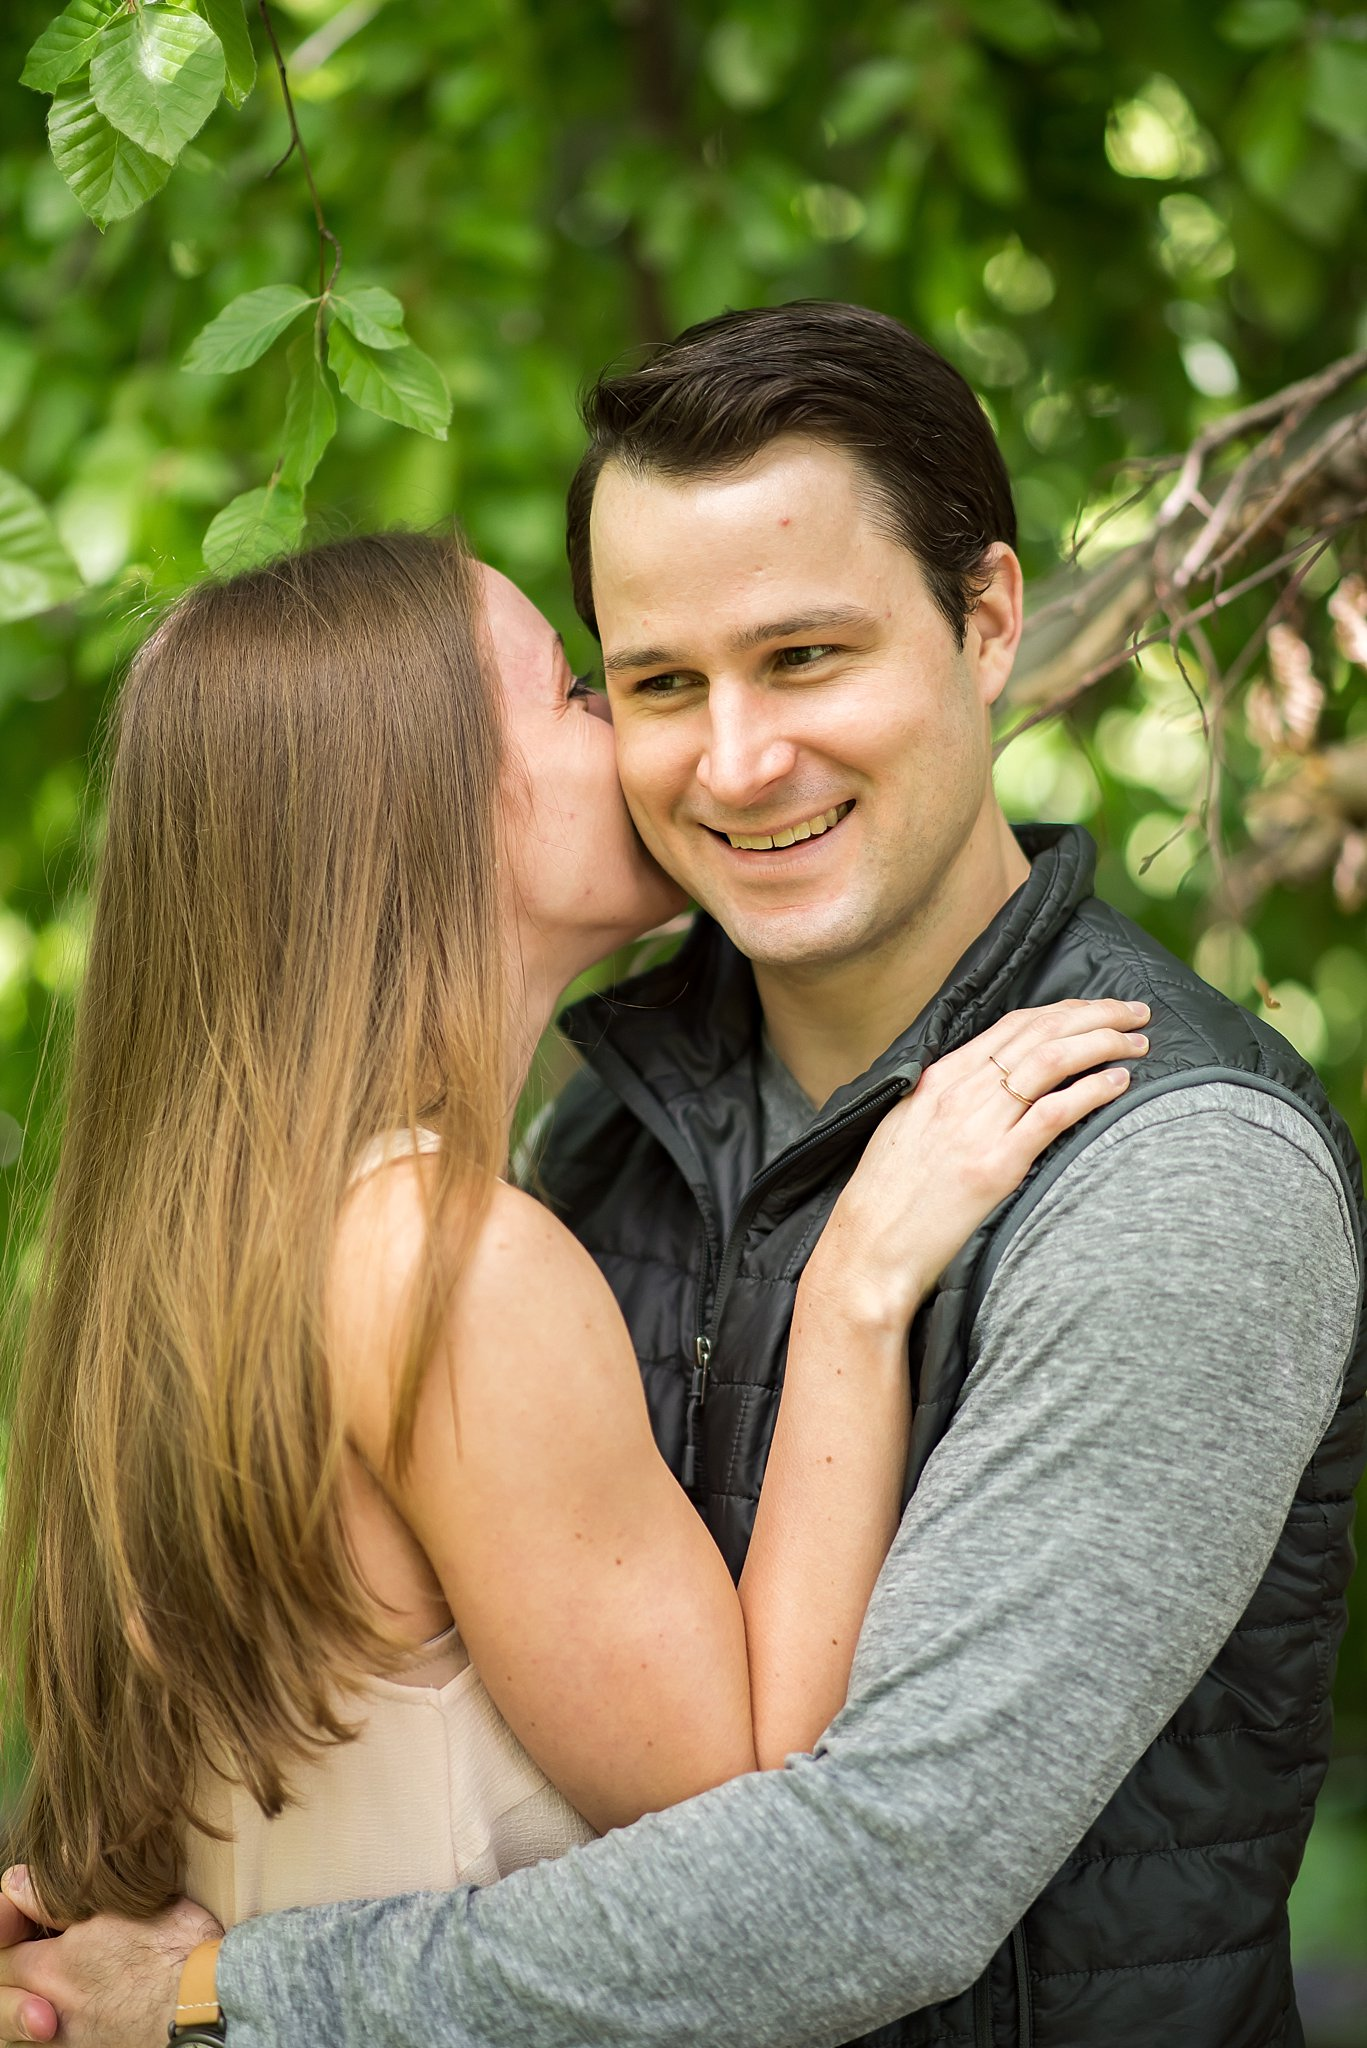 Picnic engagement session at Larz Anderson Park